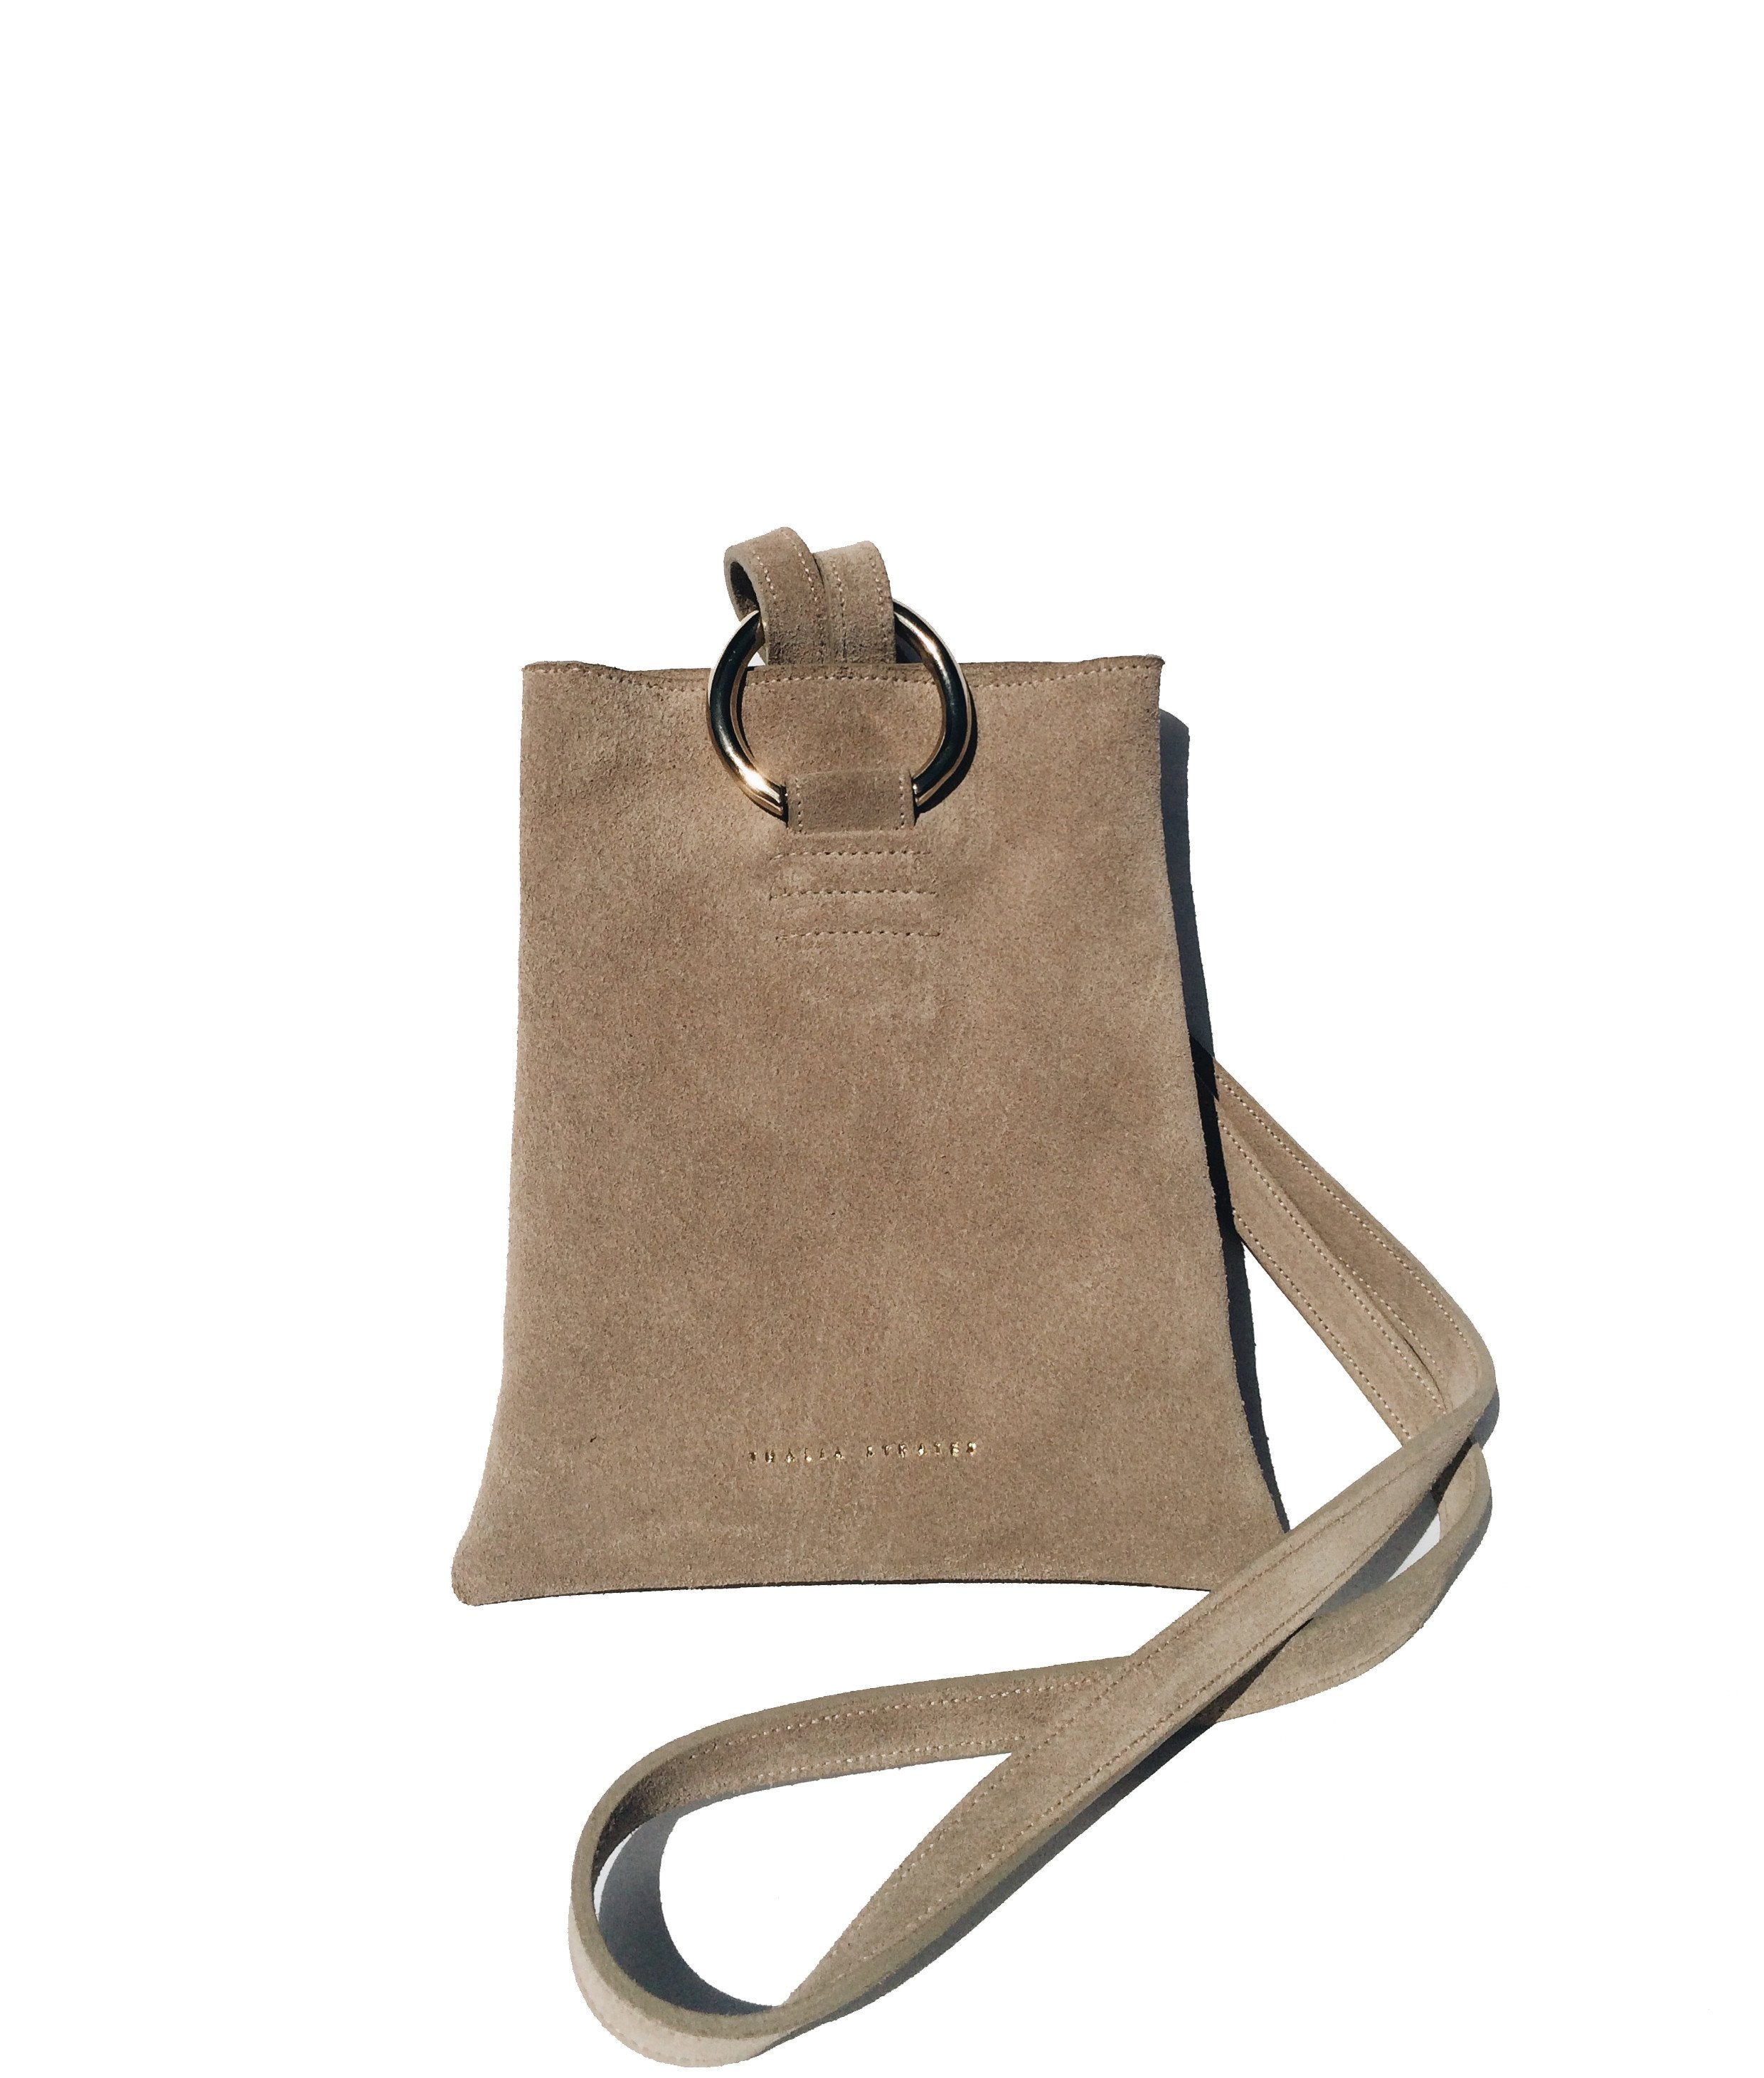 Athena Leather Bag - Sand